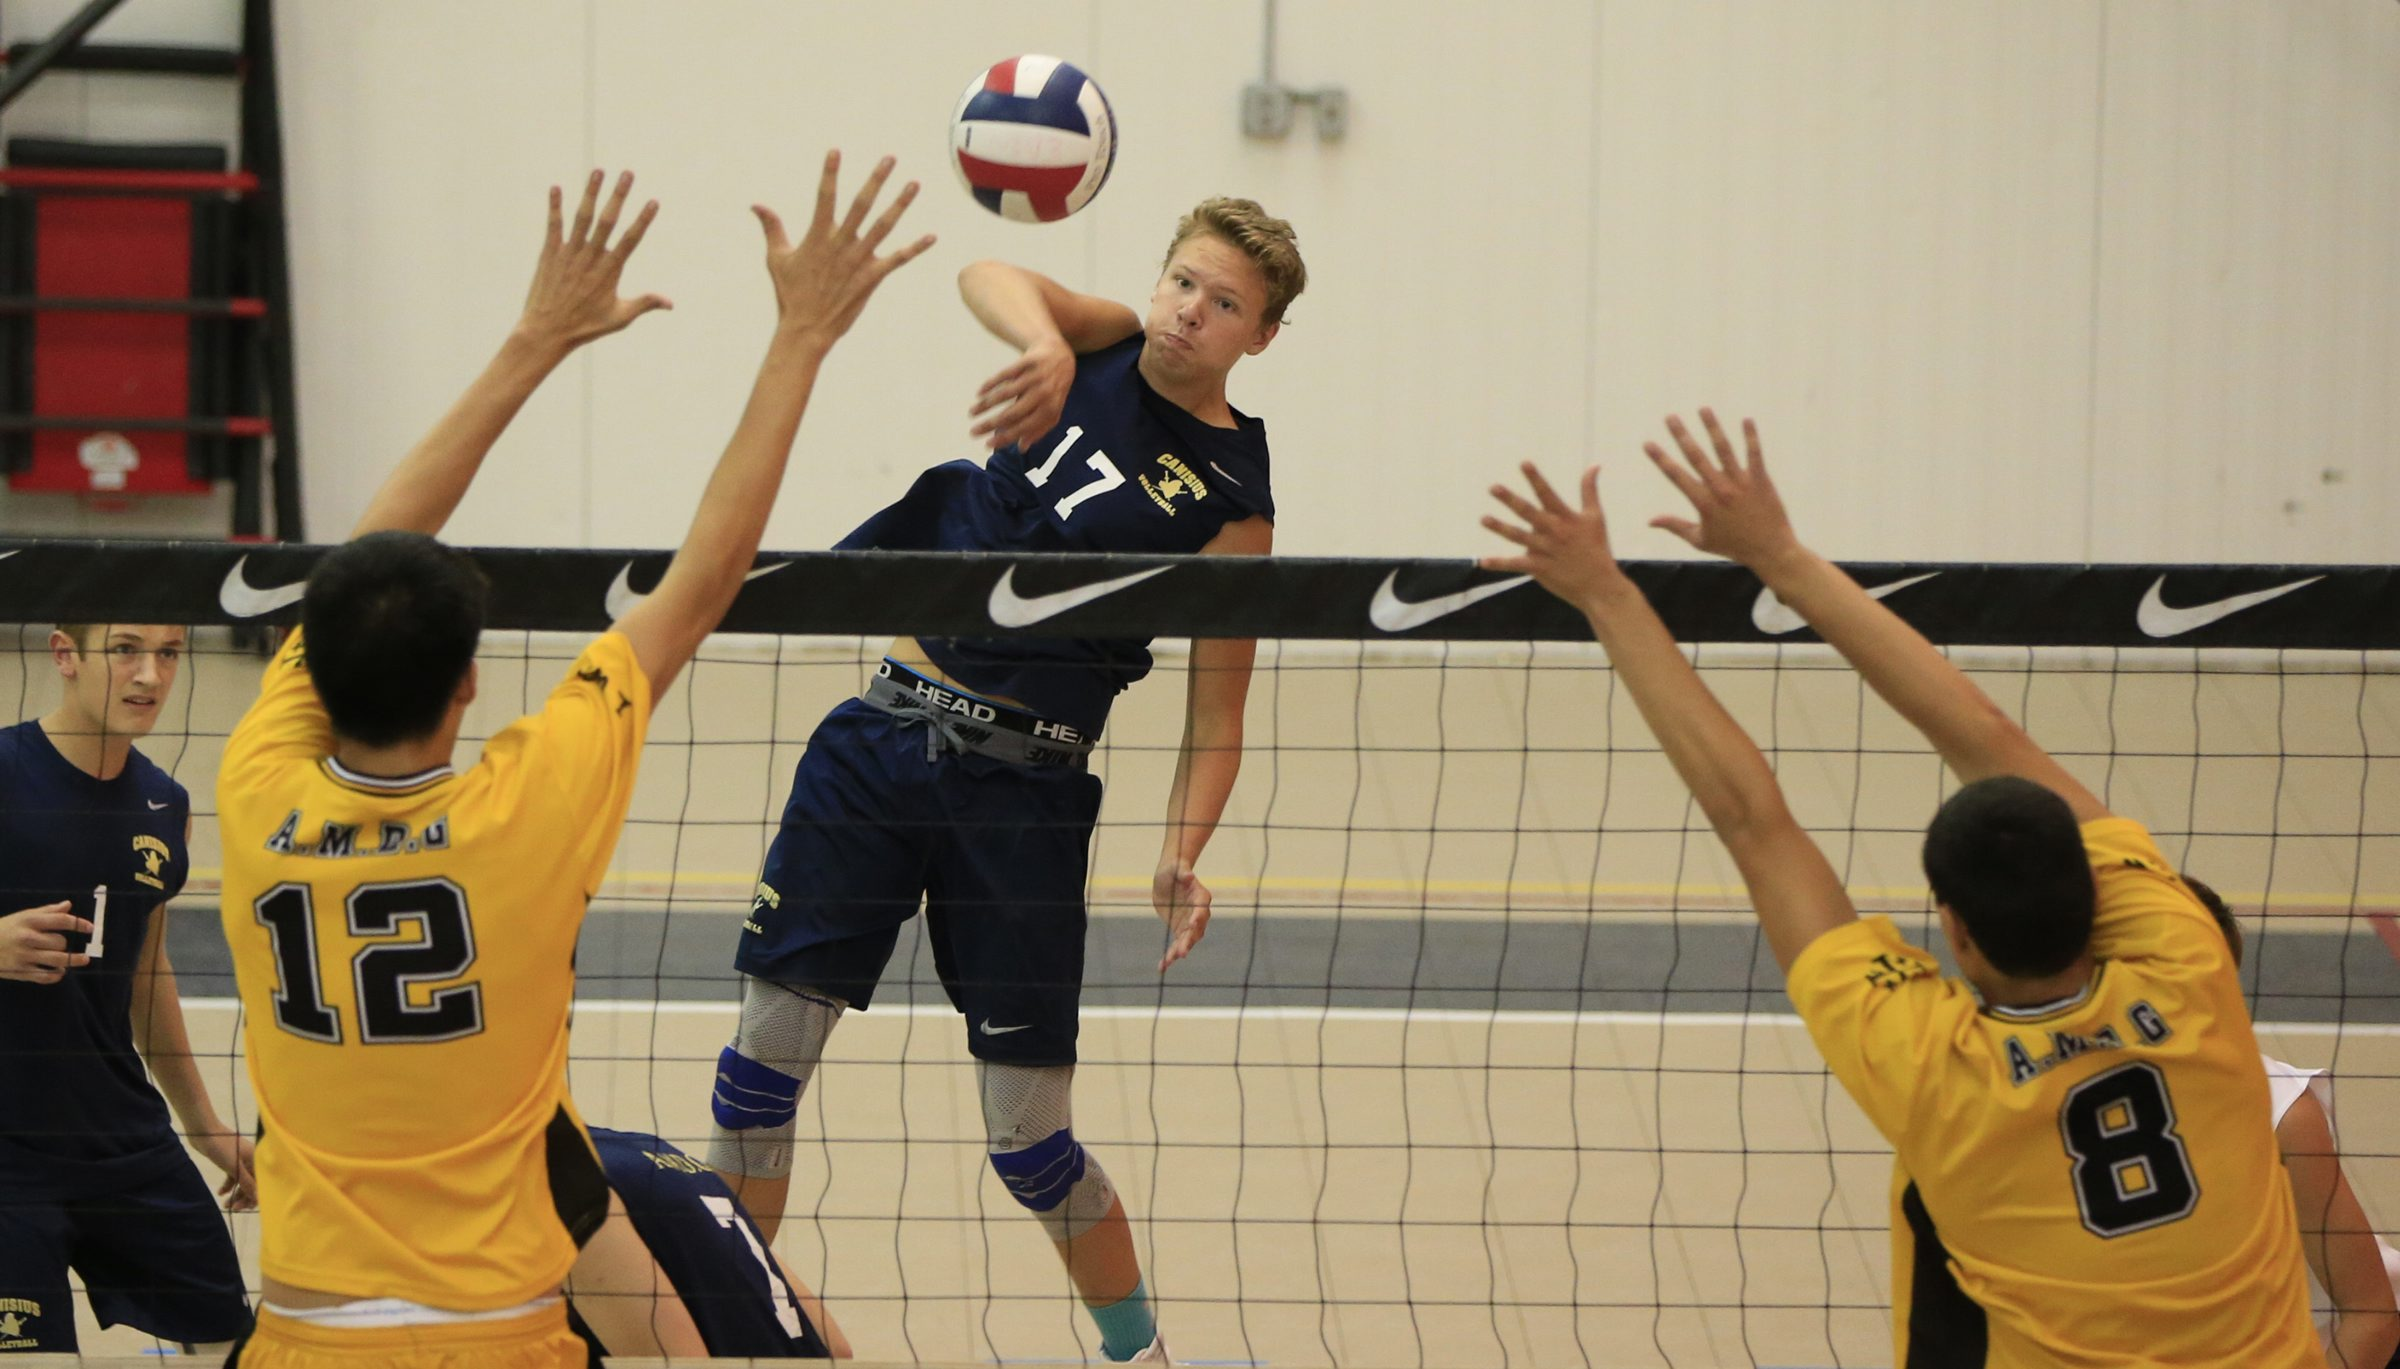 Canisius's Devin Joslyn returns a ball against McQuaid during  the finals of the Eden Pan-Am boys volleyball tournament  at Buffalo Niagara Center Court volleyball on Sept. 12.  (Harry Scull Jr./Buffalo News)